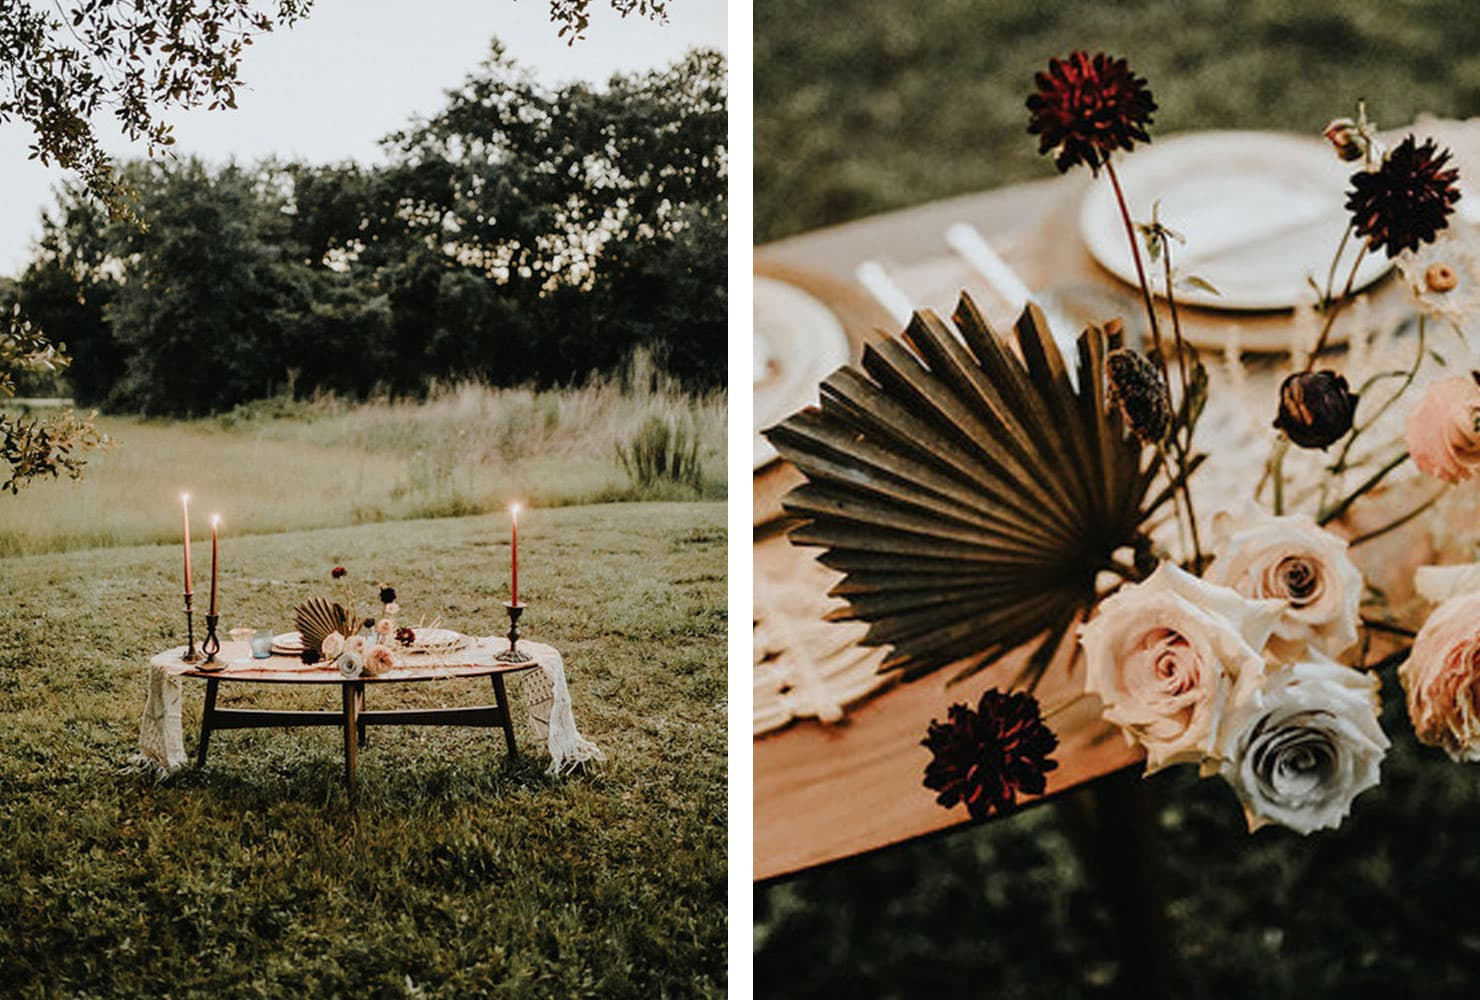 sweetheart table ideas for every season shutterfly dark whimsical hues accent your focus runner short wood with white crochet and accents patio weathered end cabinet door knobs